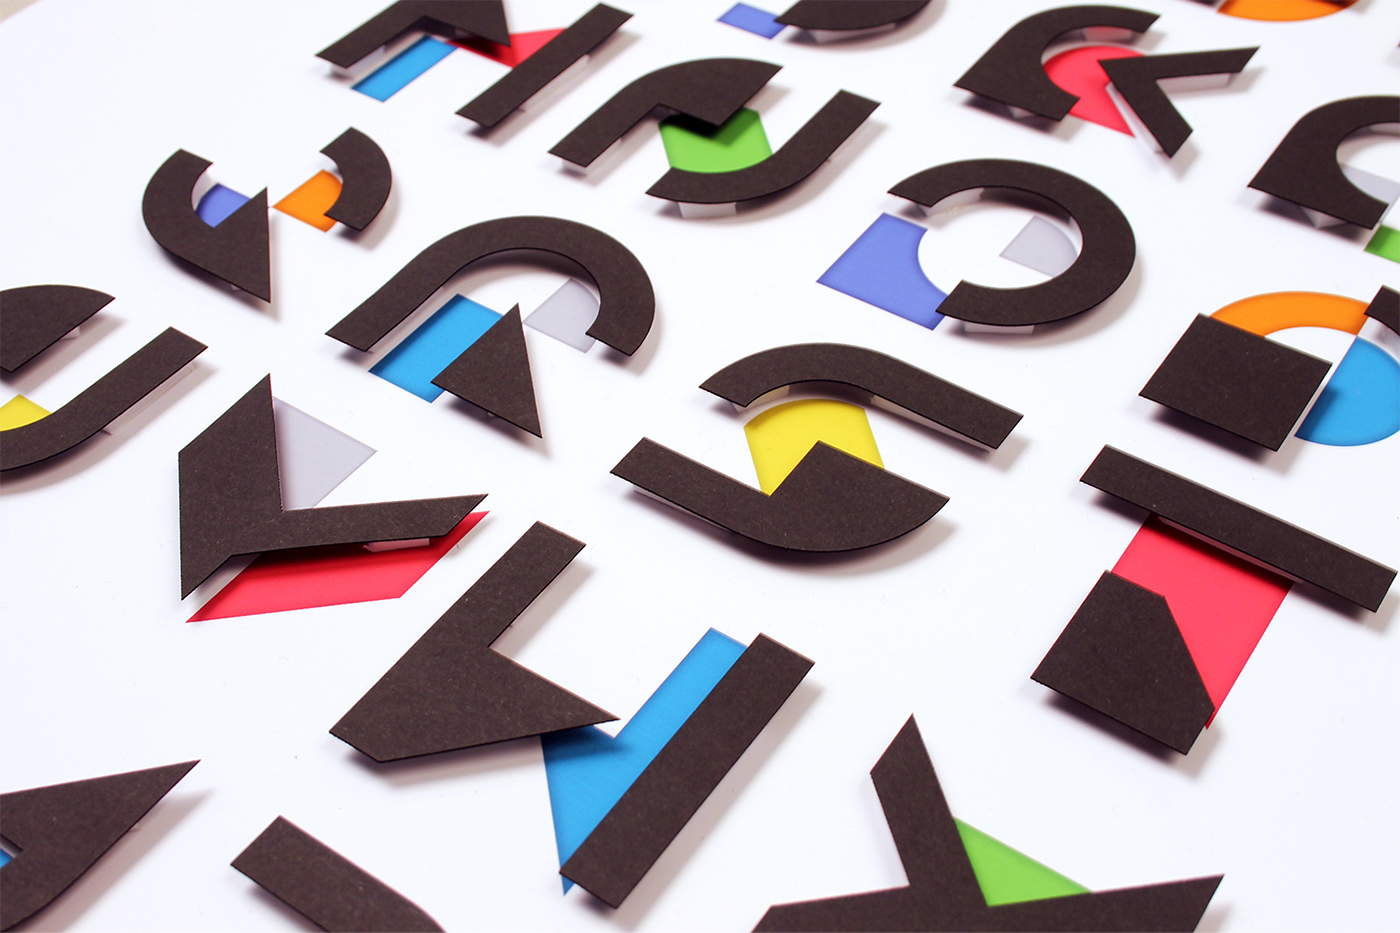 graphic design paper layers type font Display Typeface shapes geometric letters